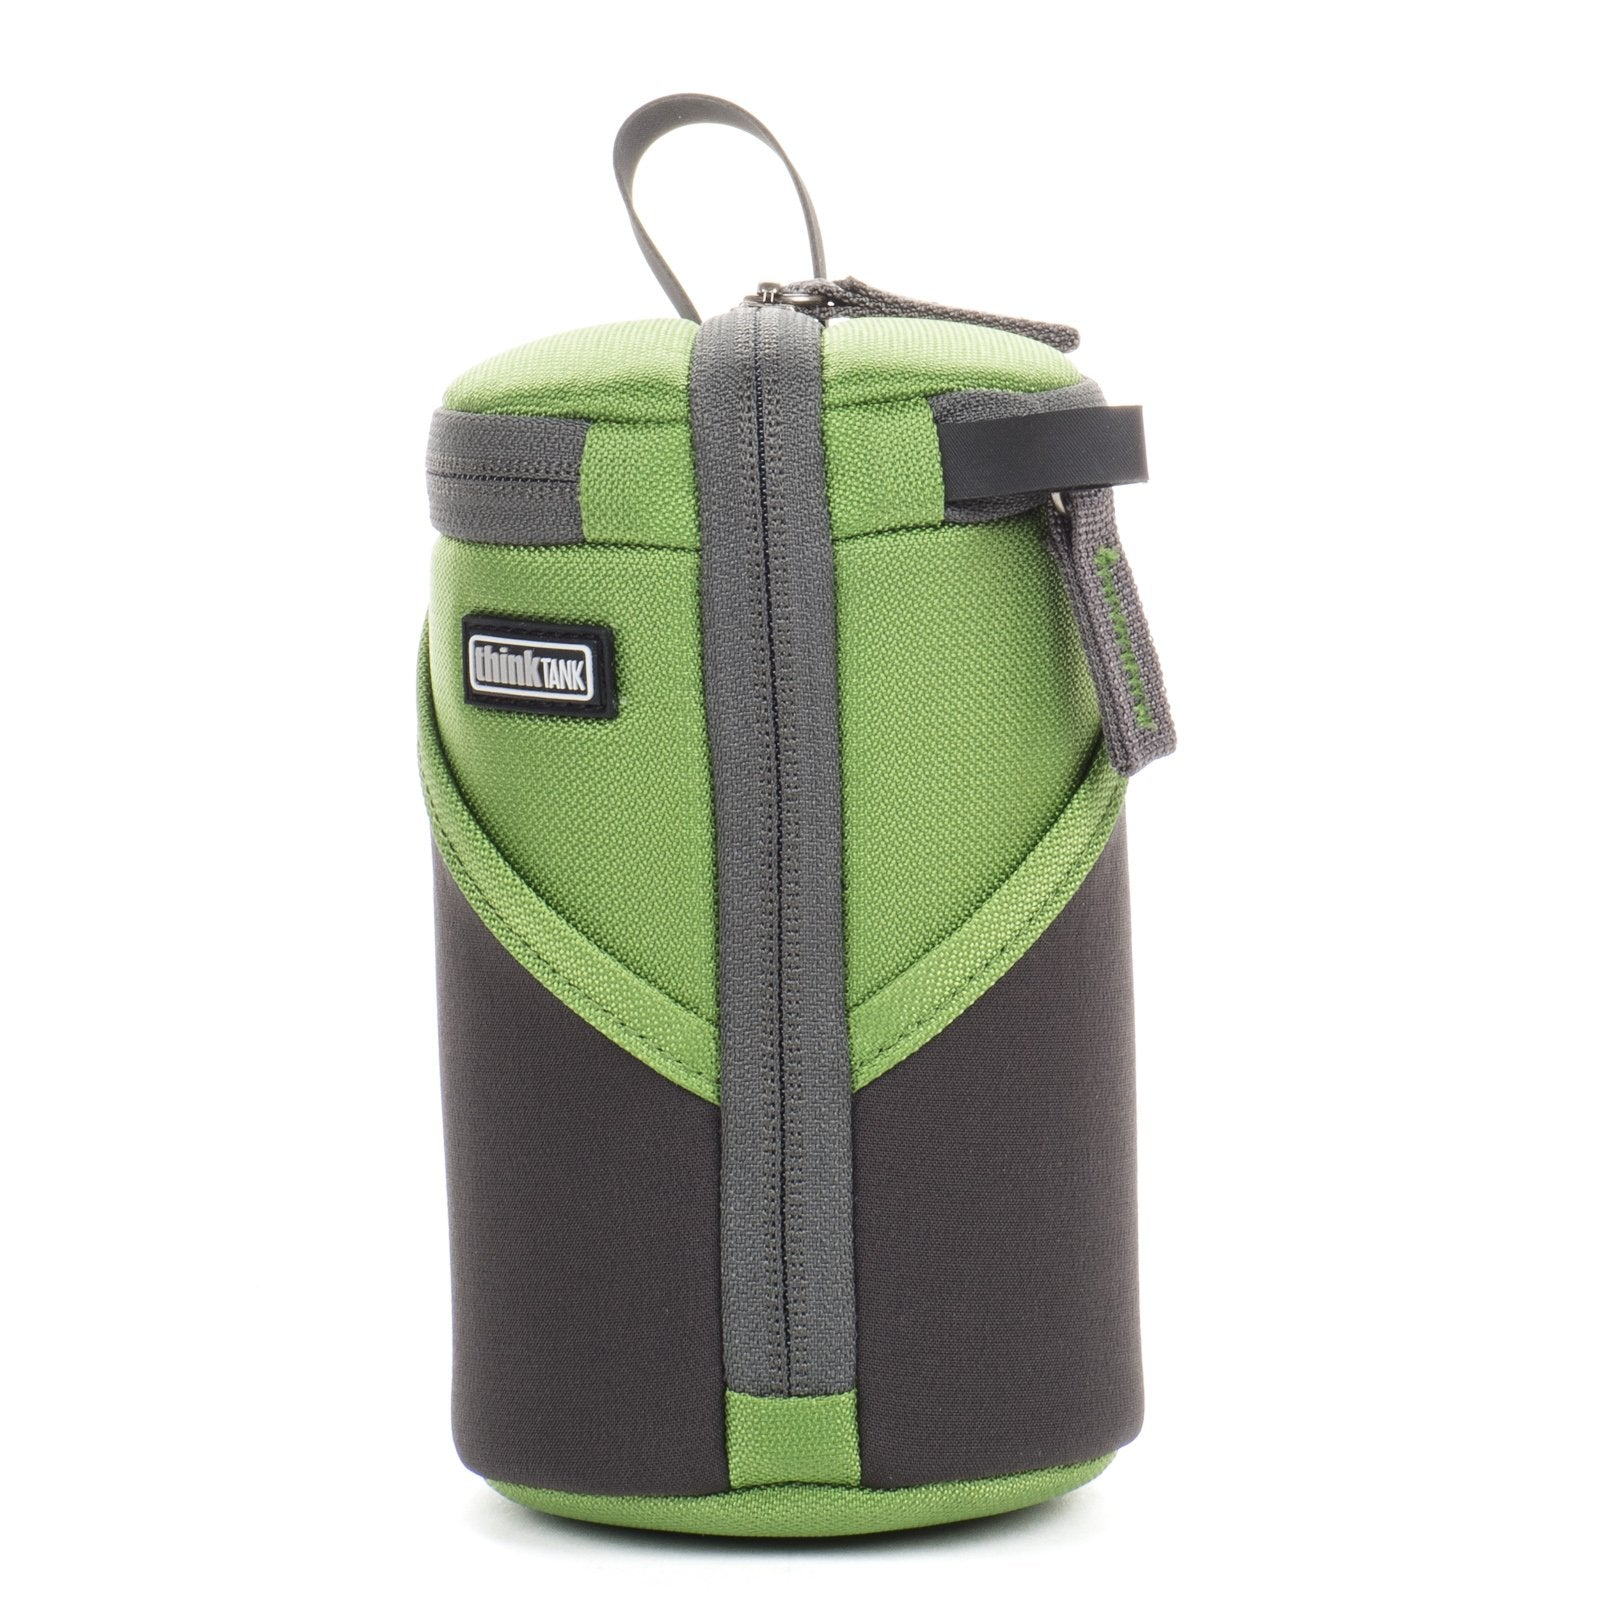 Think Tank Lens Case Duo 10 - Green